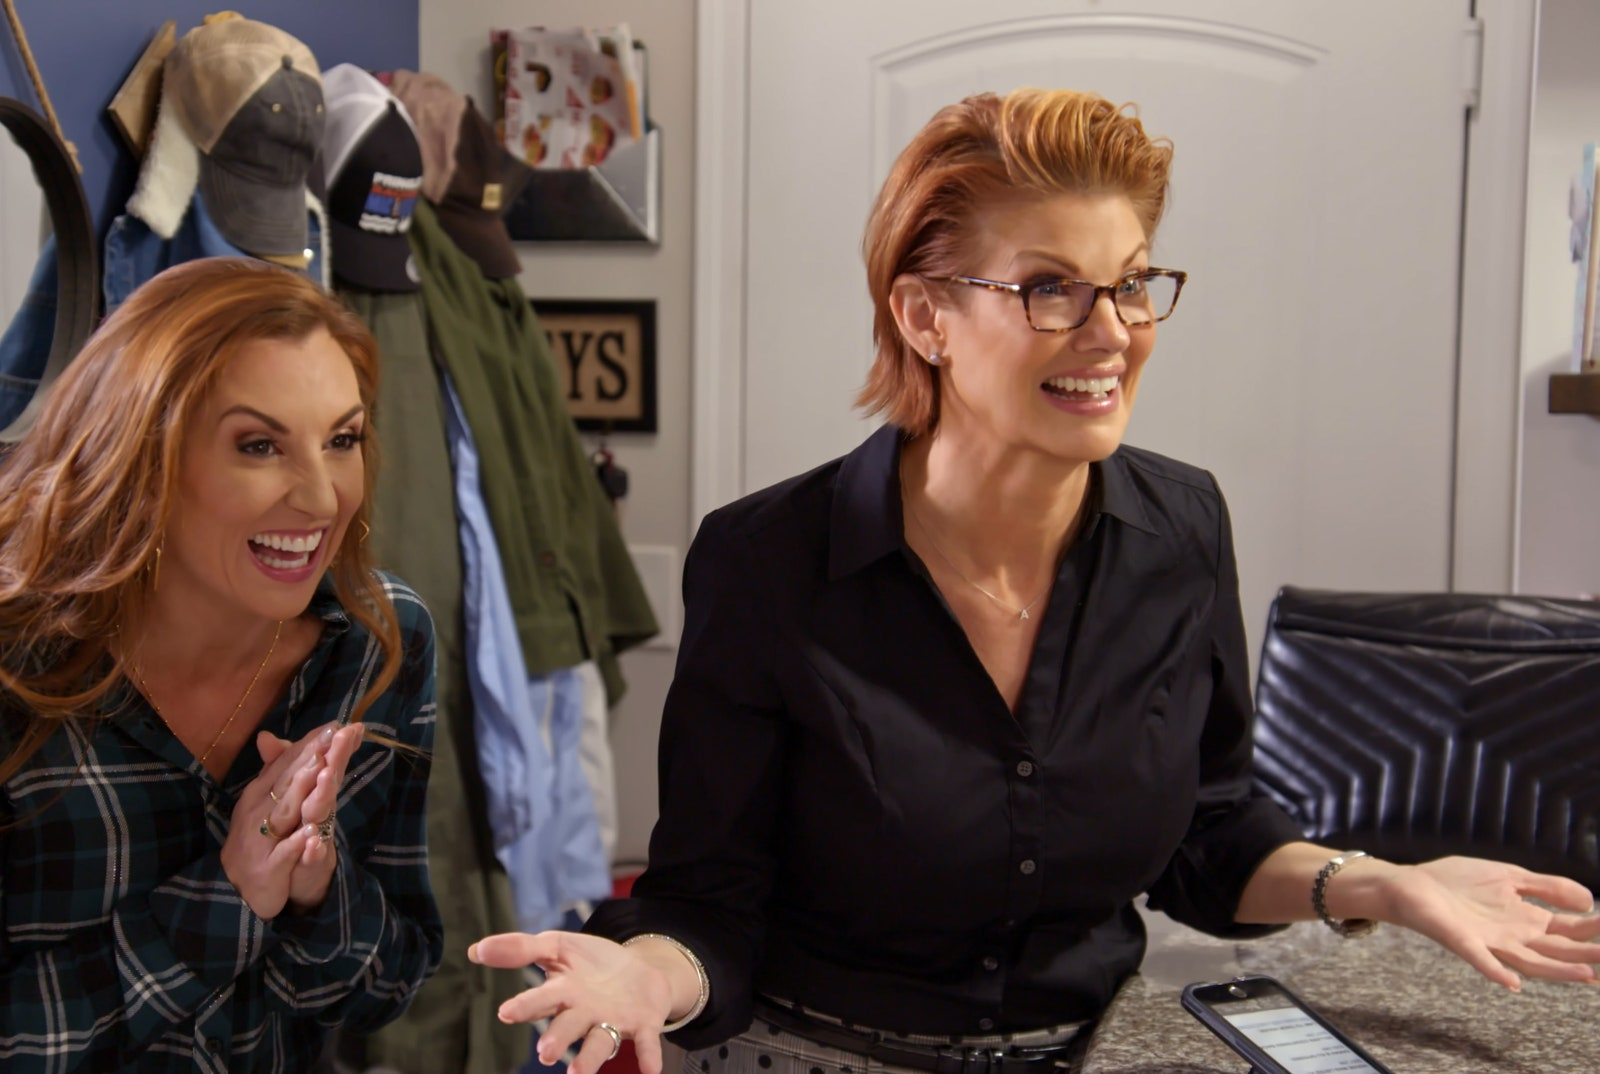 MARRIAGE OR MORTGAGE SARAH MILLER and NICHOLE HOLMES in Episode A LITTLE BIT CLASSY AND TRASHY from MARRIAGE OR...